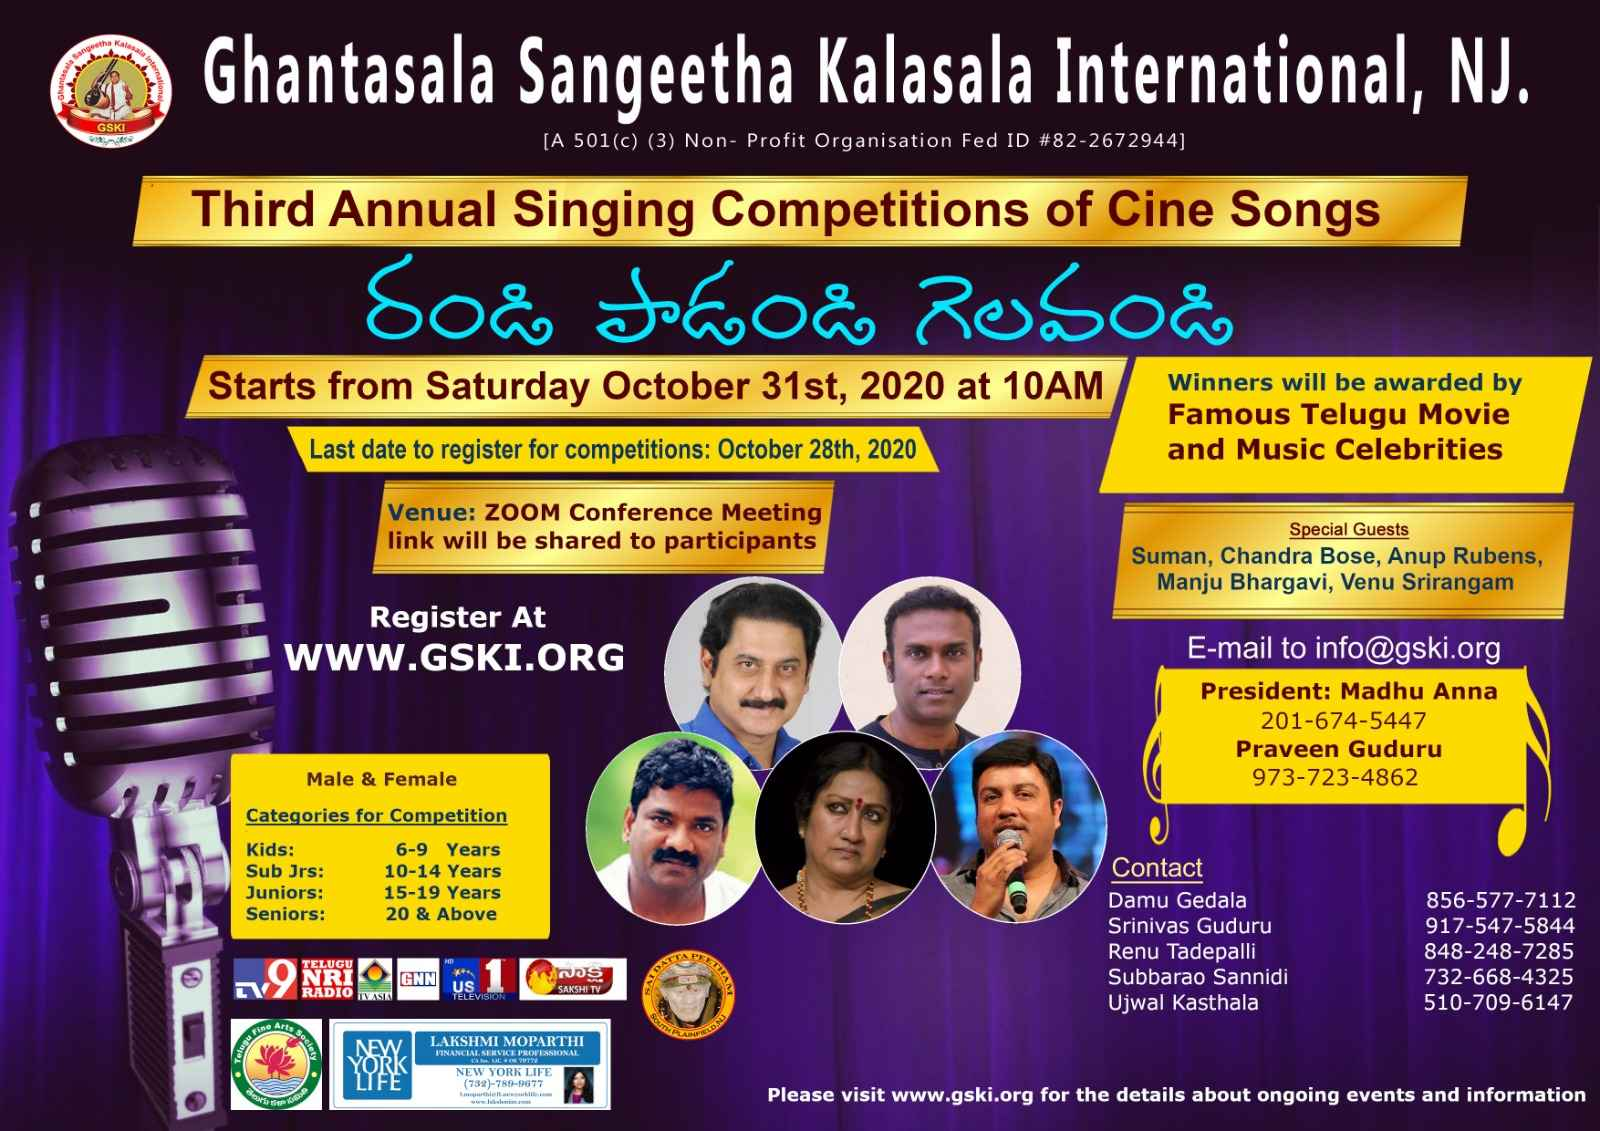 Ghantasala Sangeetha Kalasala International, NJ - Third Annual Singing Competitions